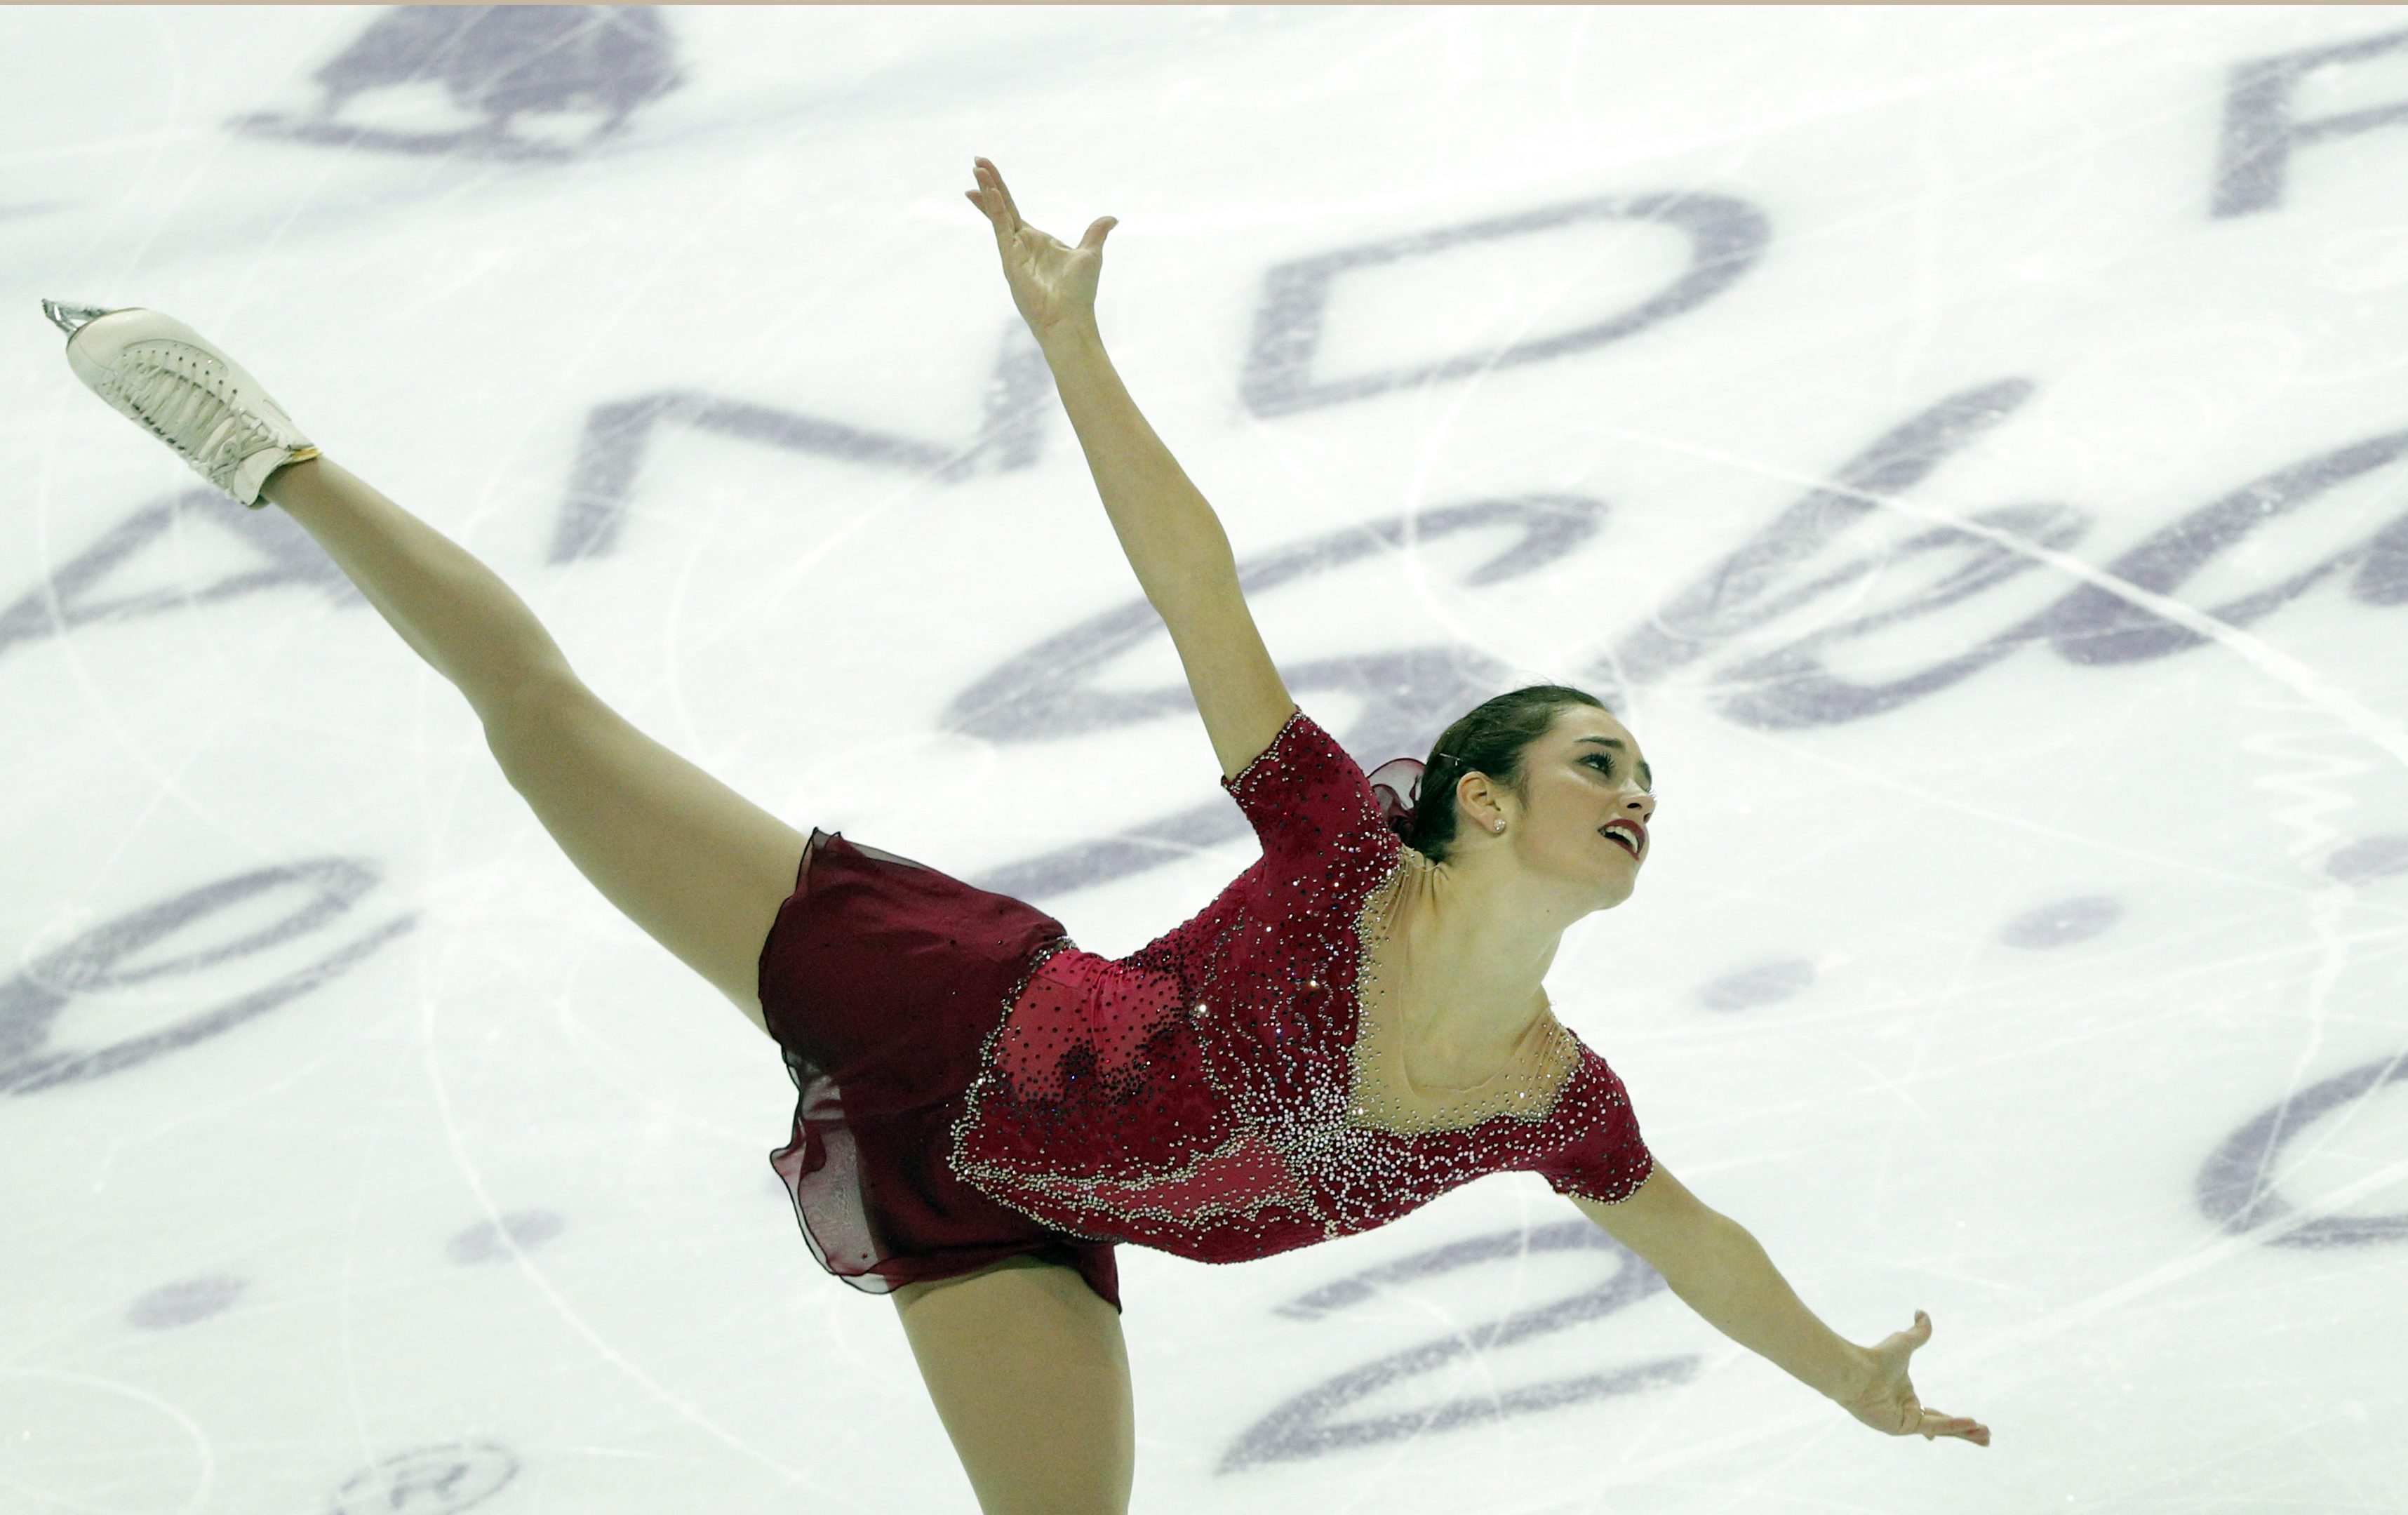 Kaetlyn Osmond of Canada competes in the Ladies Free Skating Program during ISU Grand Prix of Figure Skating Final in Marseille, southern France, Saturday, Dec. 10, 2016. (AP Photo/Christophe Ena)